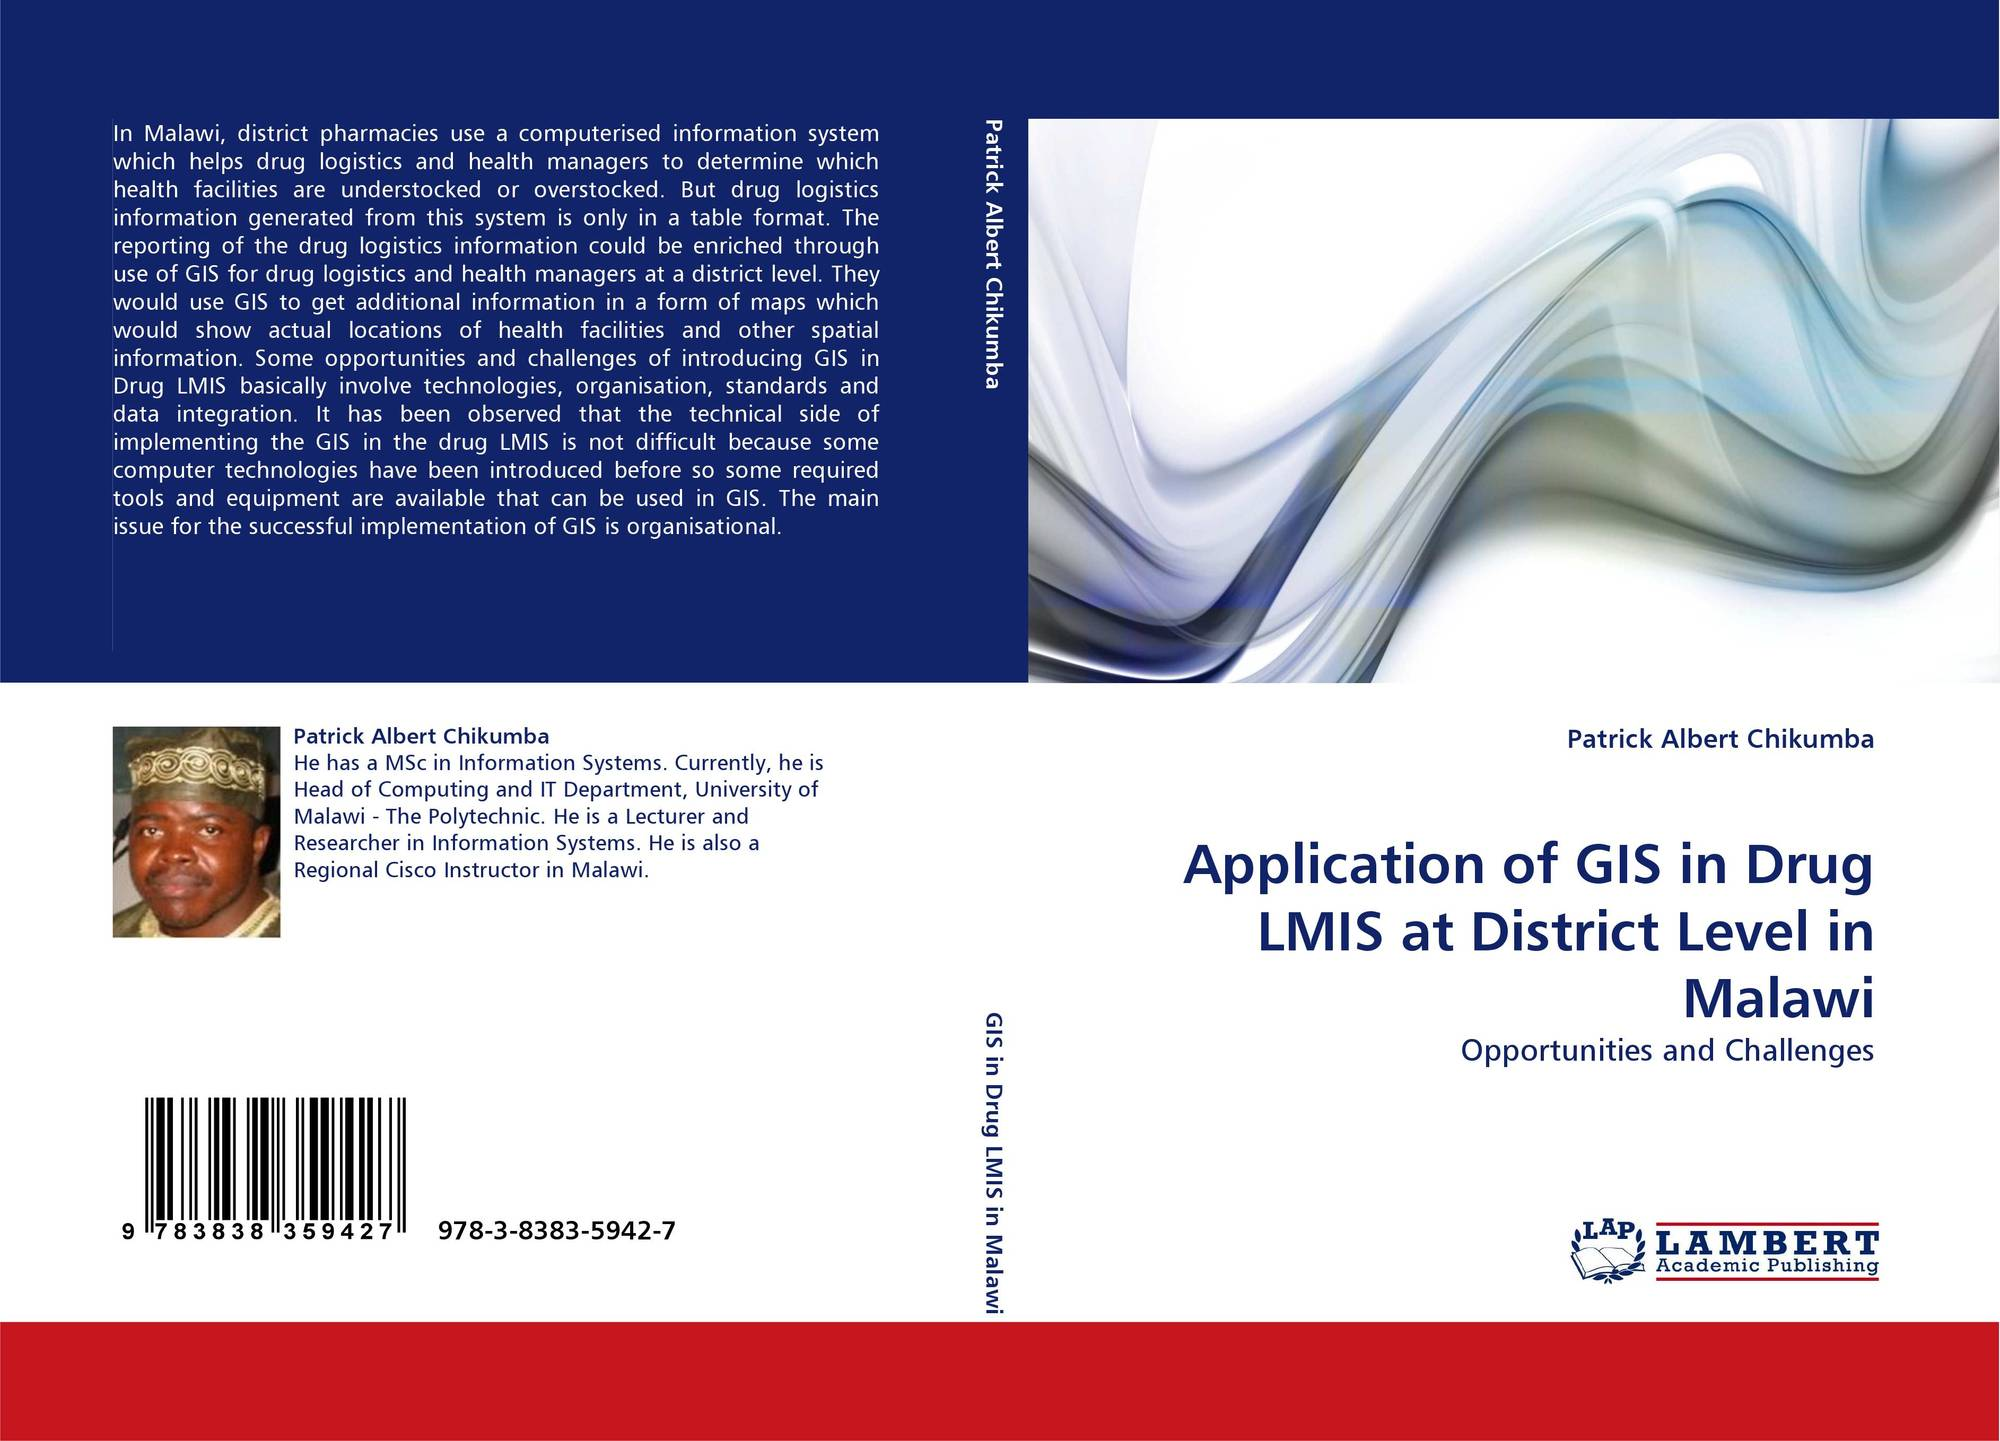 application of gis